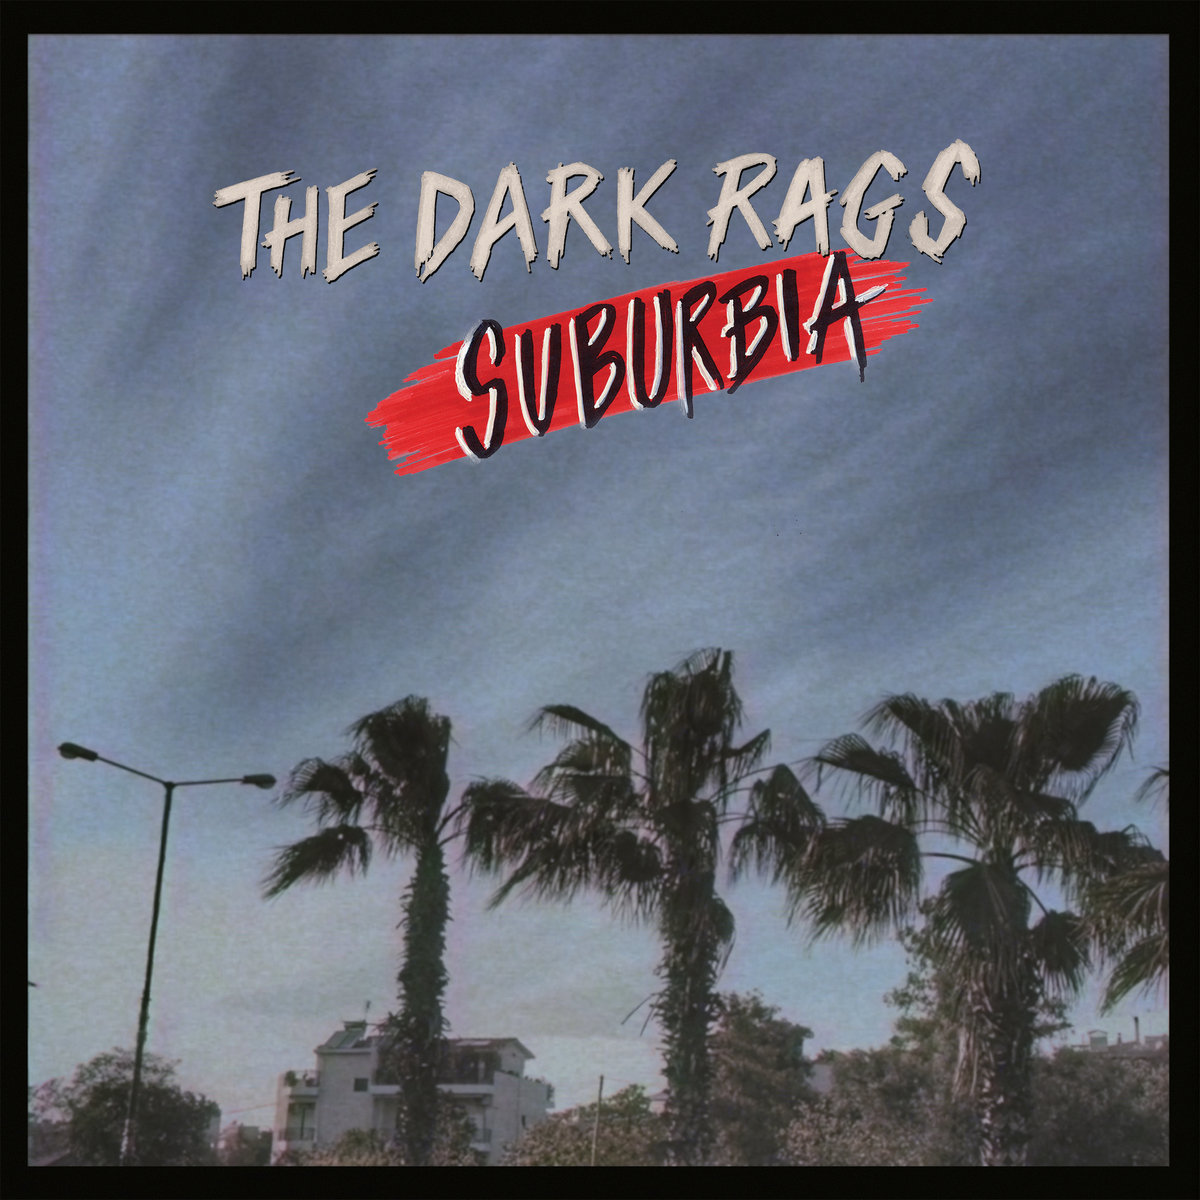 The Dark Rags cover